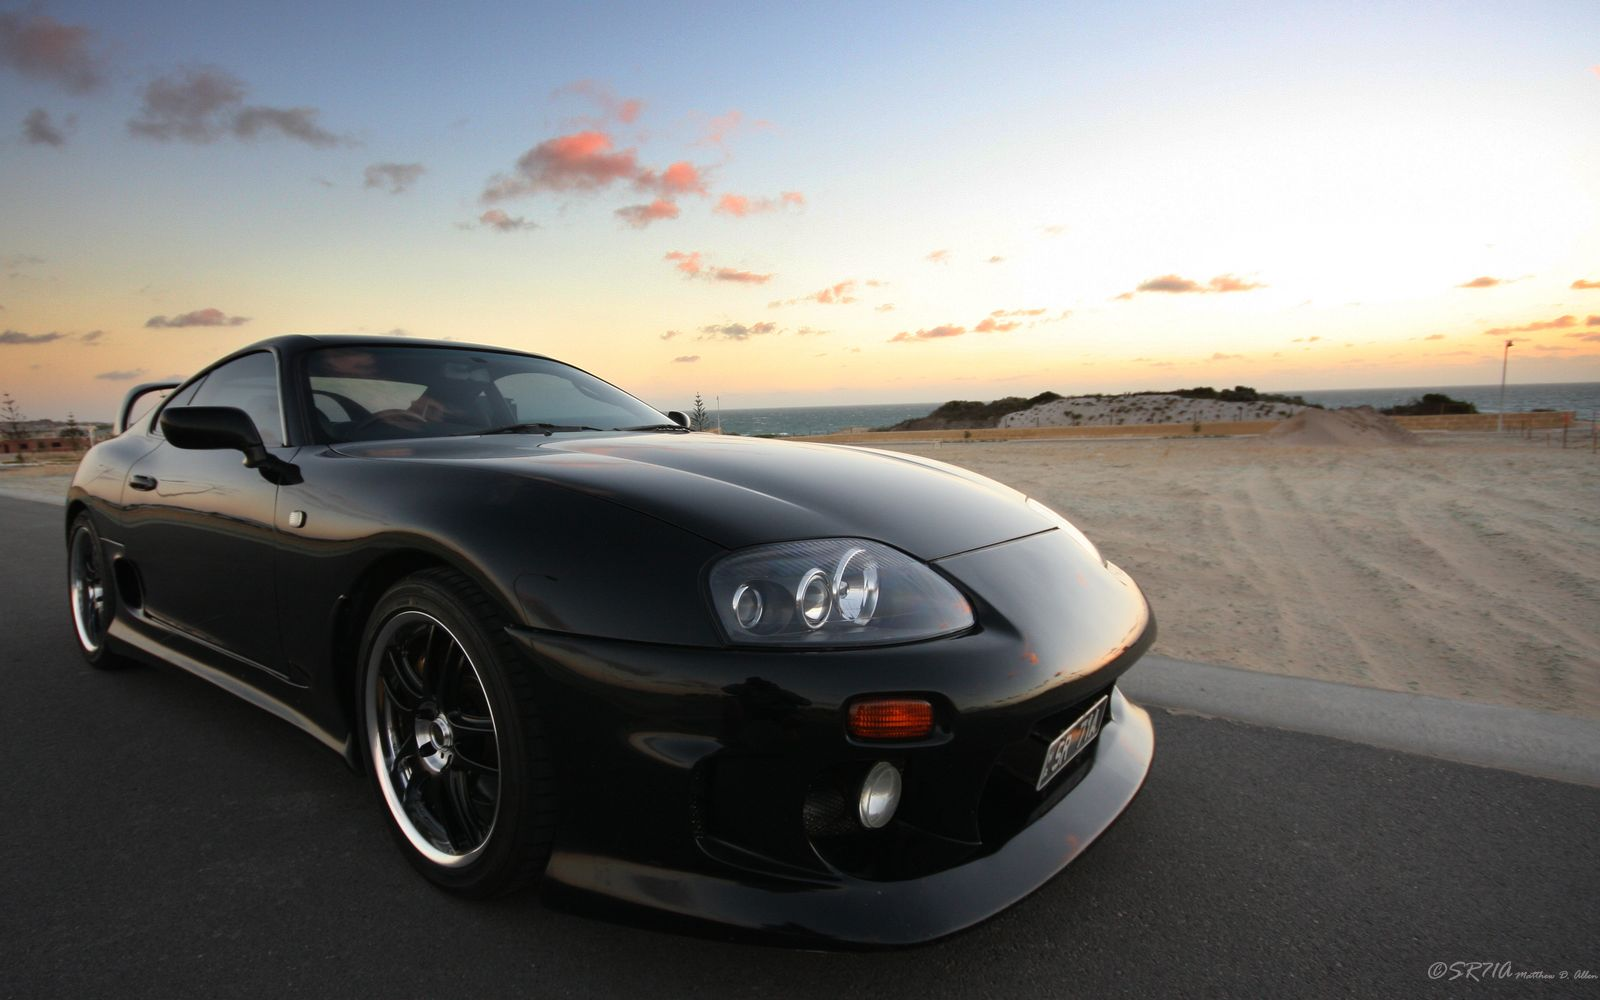 Toyota Supra Wallpaper Hd 1506 Wallpaper Walldiskpaper